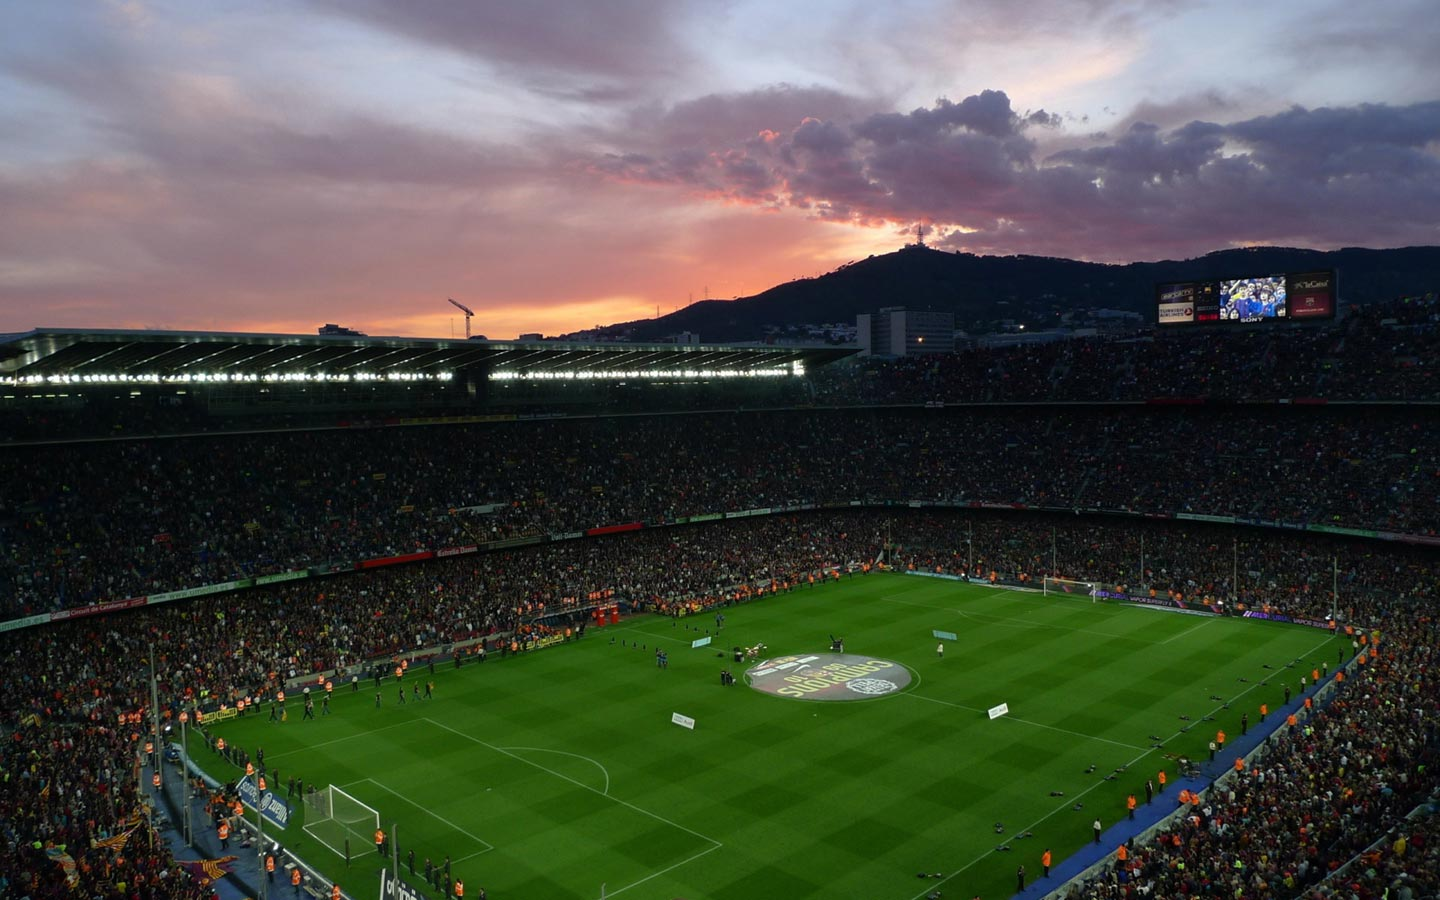 http://2.bp.blogspot.com/-evlD_qmrGzg/Tz4wltKEamI/AAAAAAAABA8/IIFnblfgUg0/s1600/camp_nou_stadium_hd_widescreen_wallpapers_1440x900.jpeg